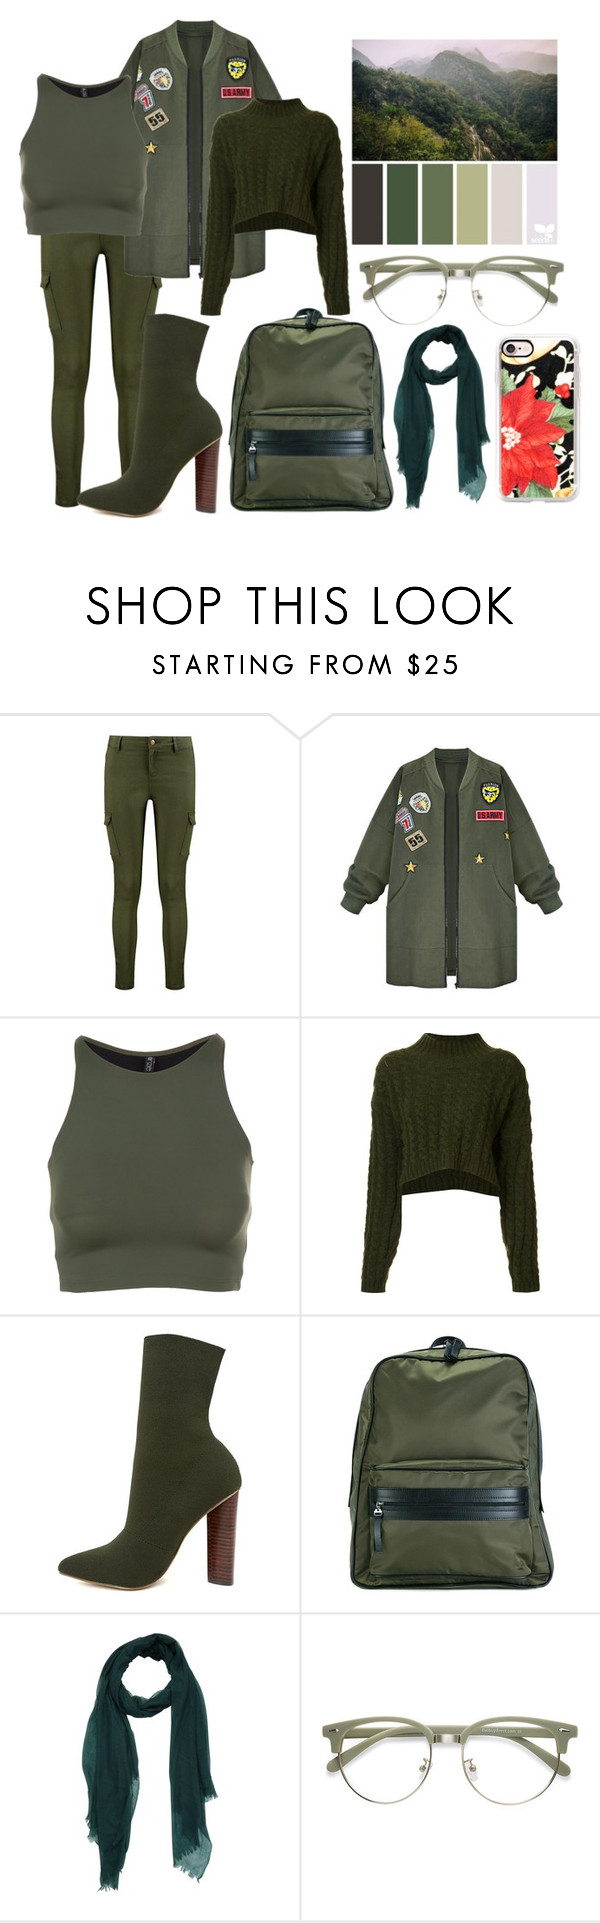 """green"" by vaxentino on Polyvore featuring moda, Boohoo, WithChic, Onzie, Vivienne Westwood Anglomania, Steve Madden, Maison Margiela e Casetify"